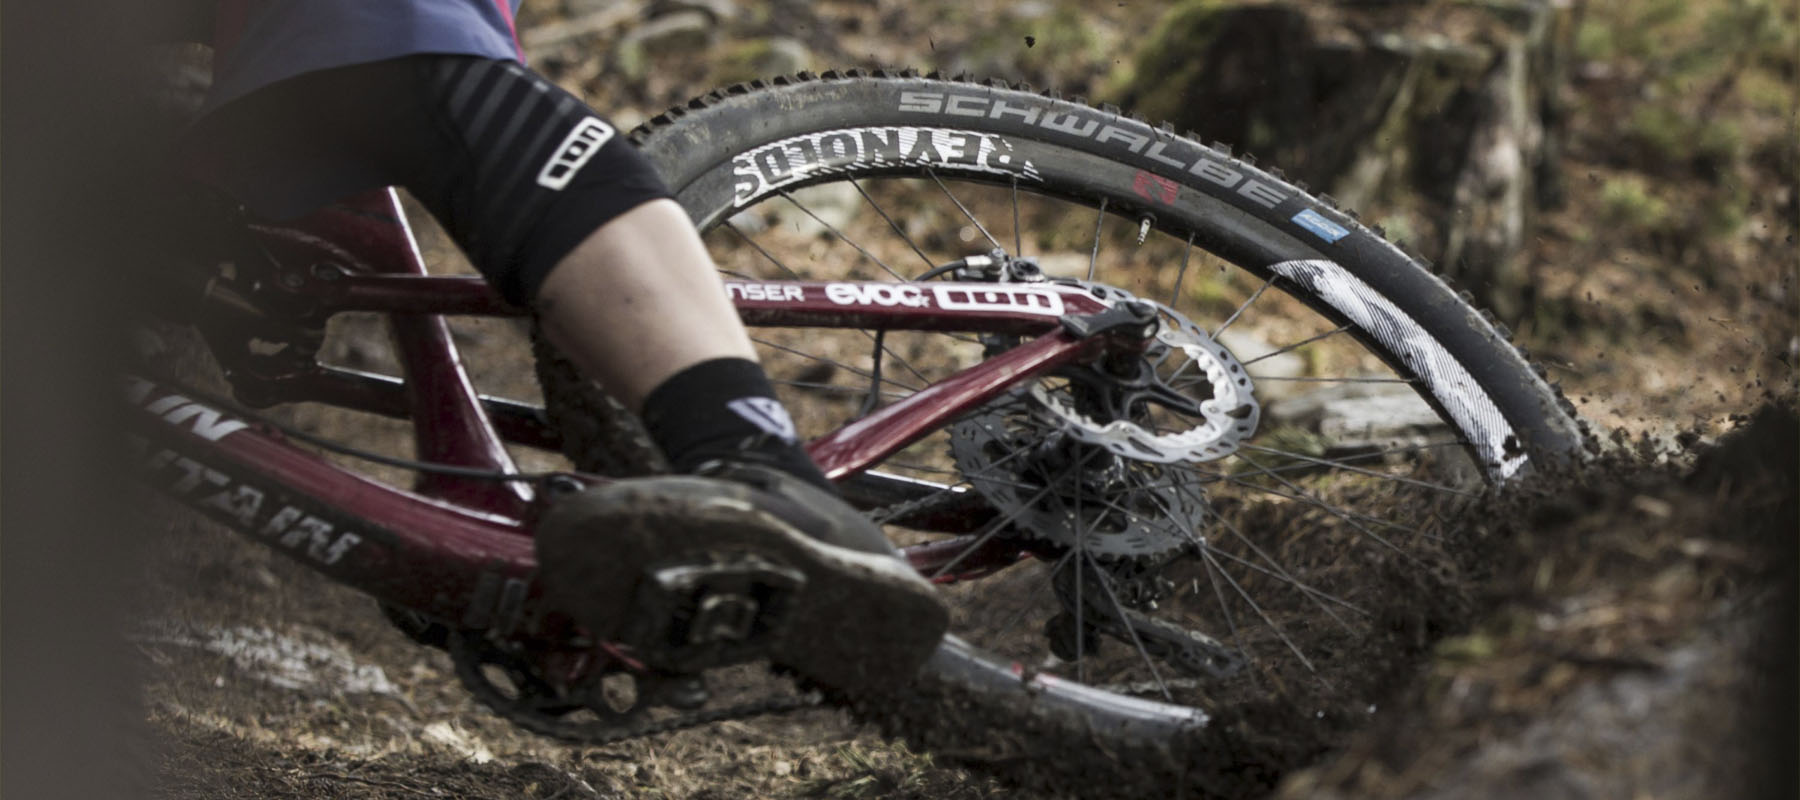 Best mountain bike tires: your connection to the trail